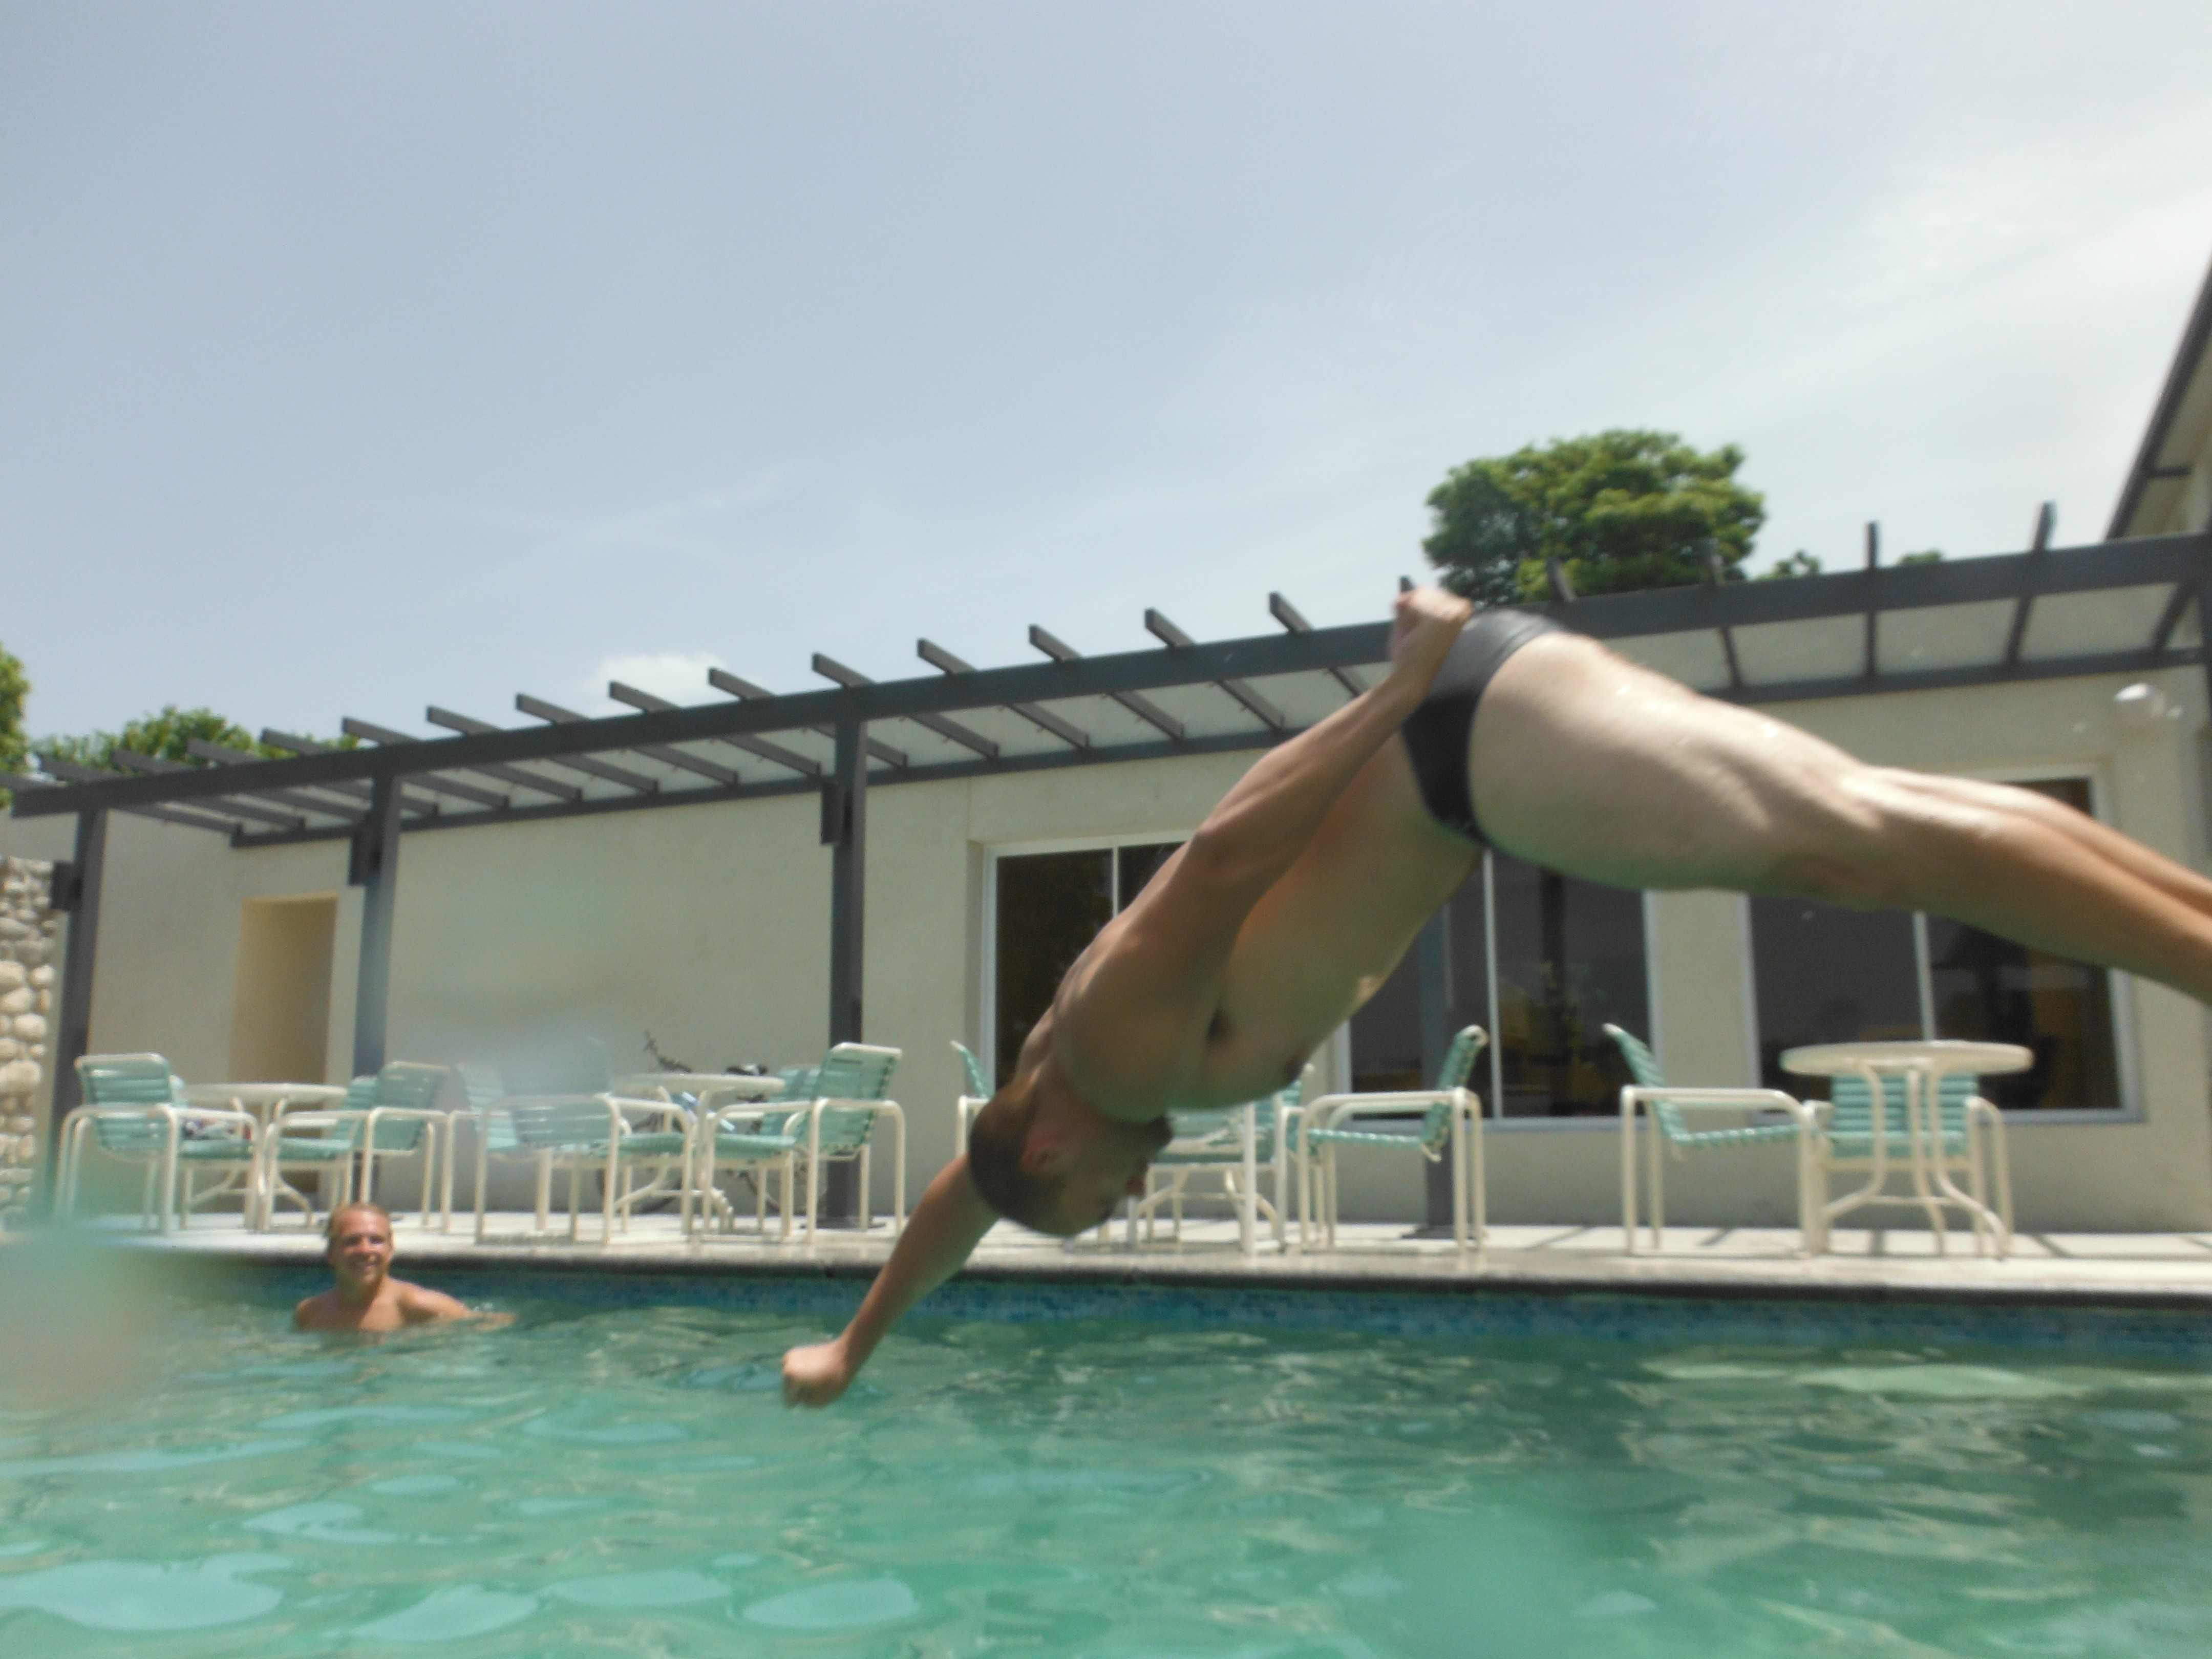 James diving like a dolphin